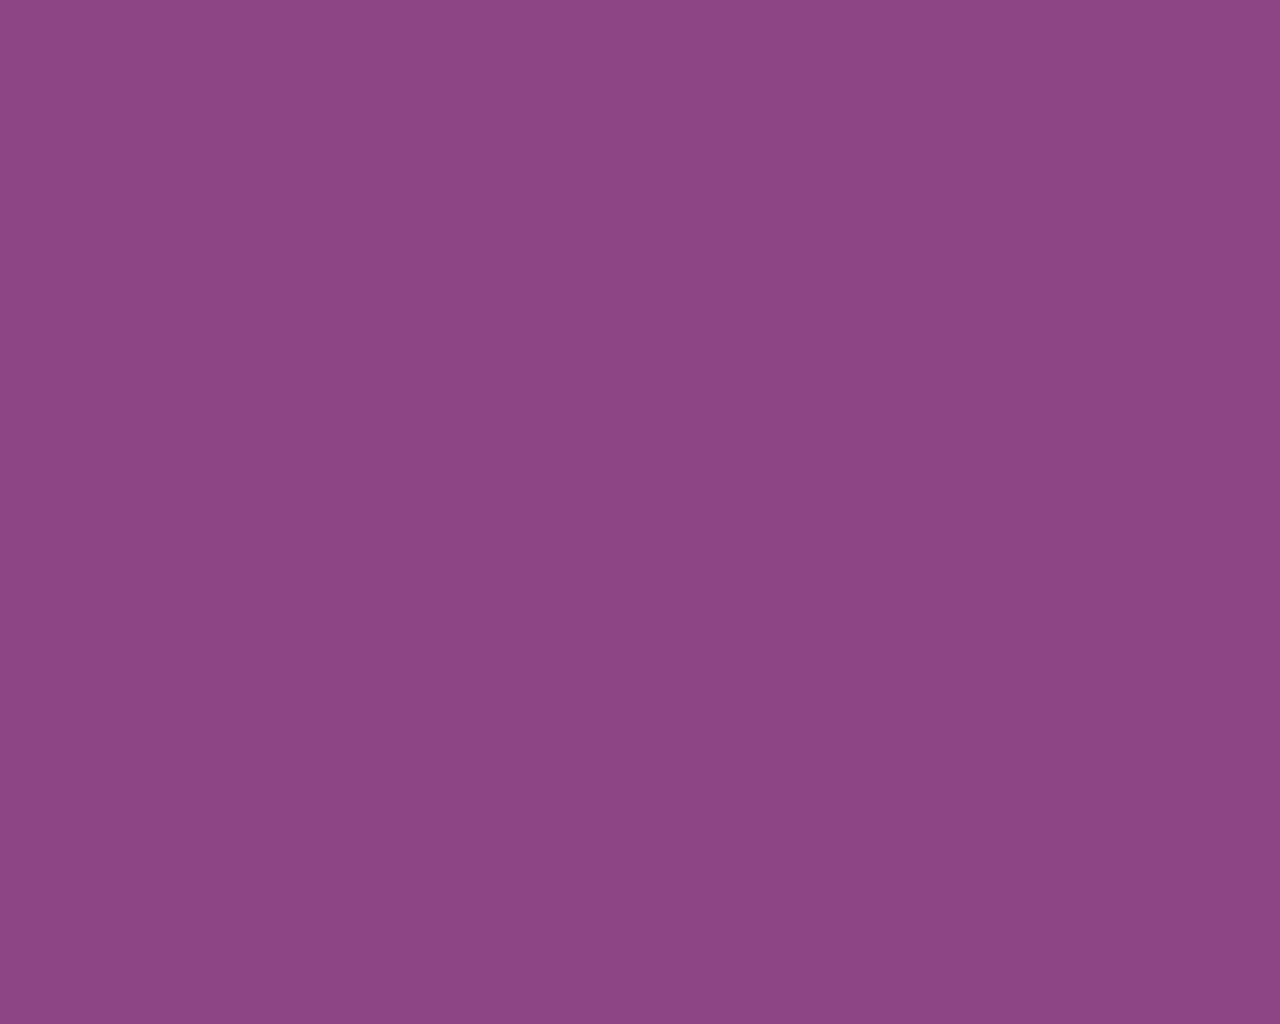 1280x1024 Plum Traditional Solid Color Background